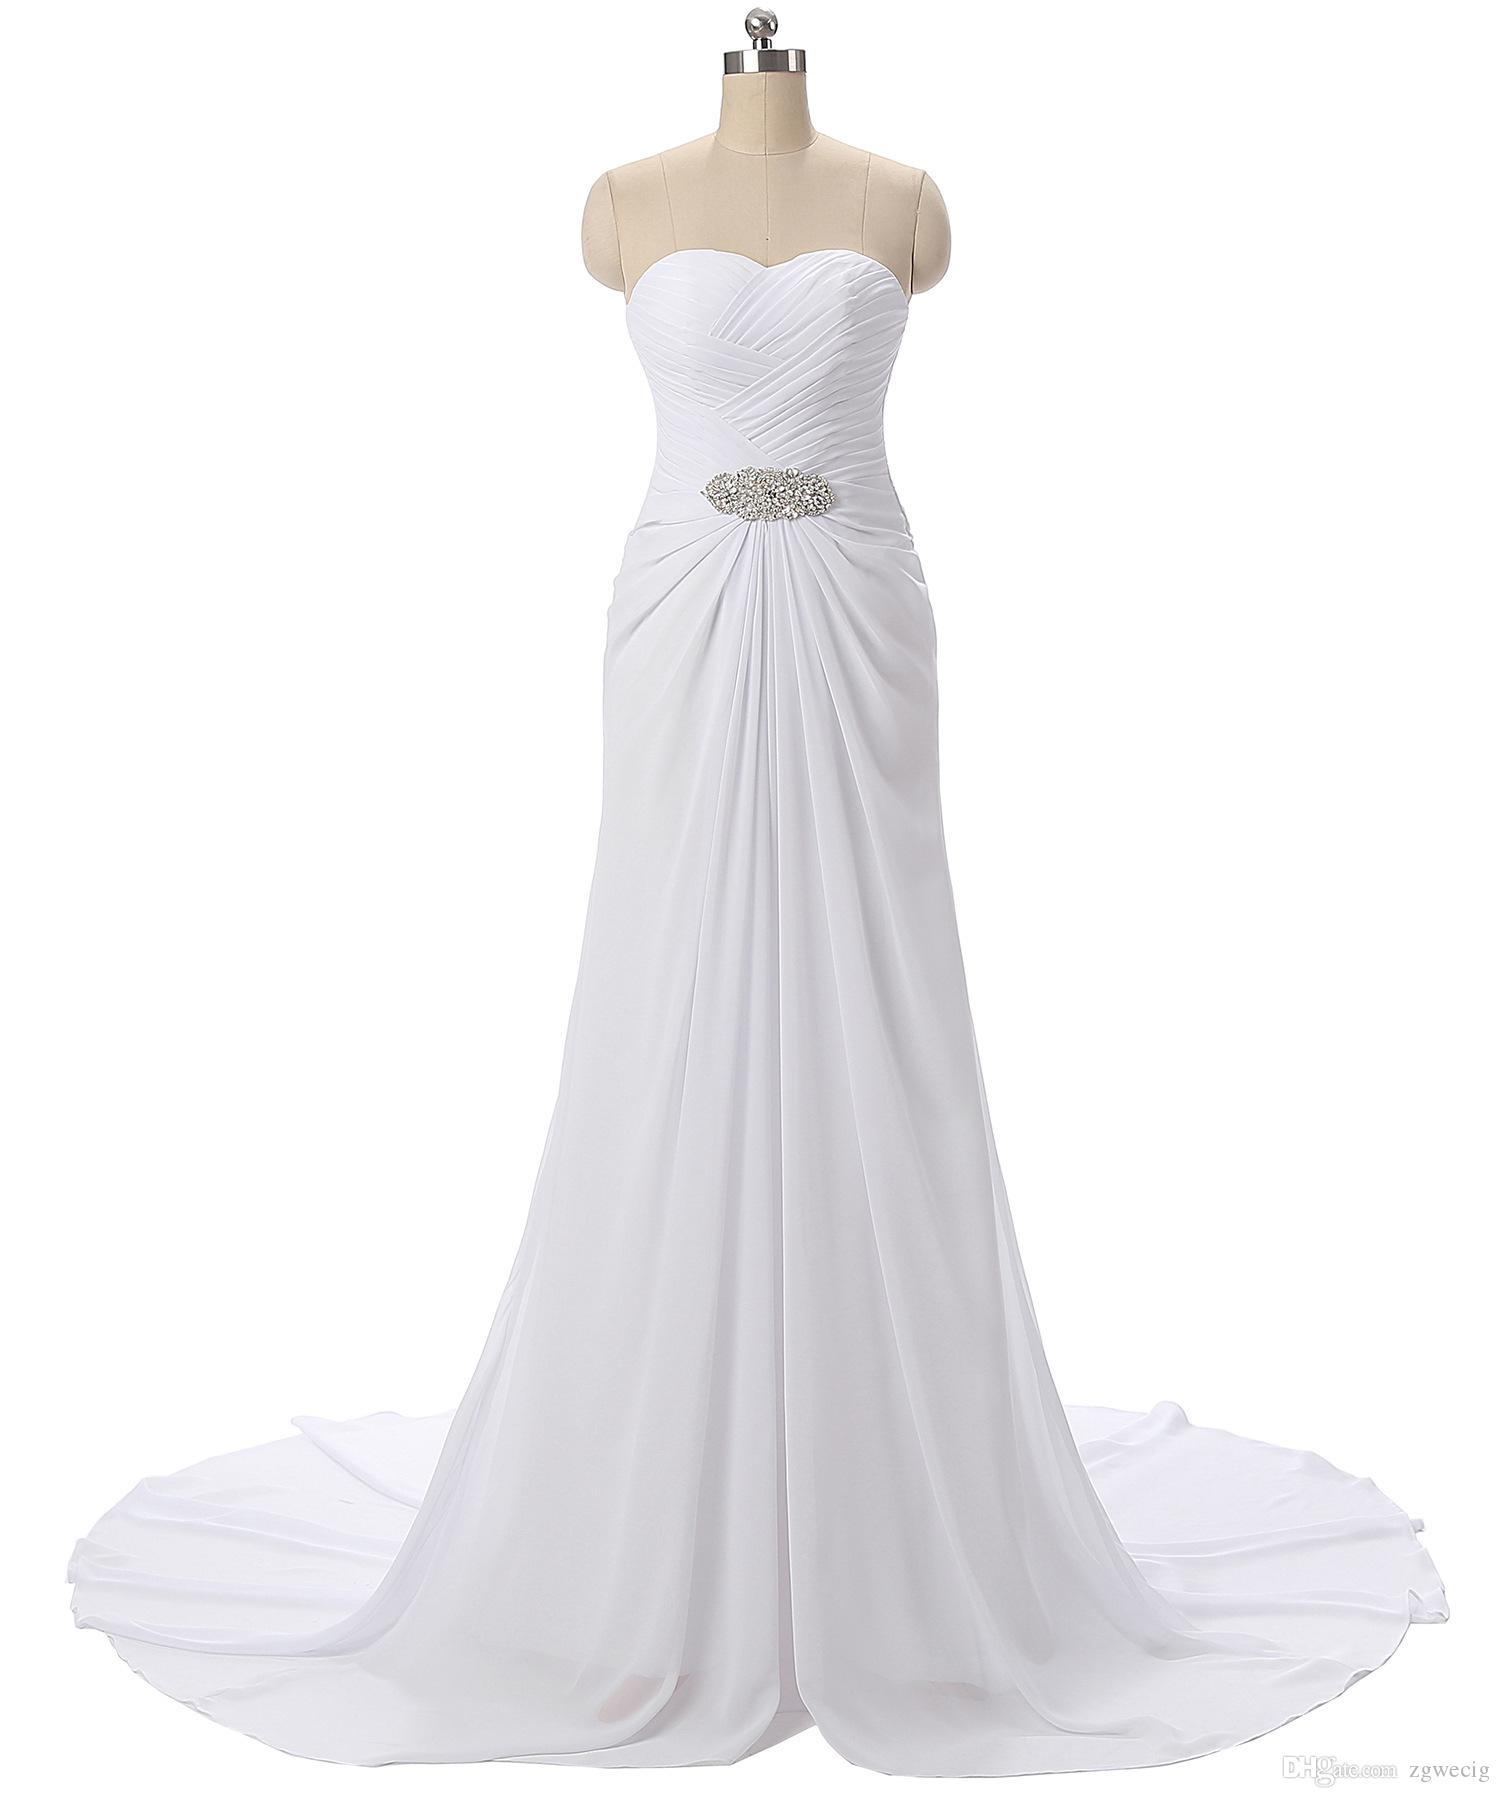 Strapless sweetheart neckline wedding dress with corseted high back crepe satin bodice bridal gown Organza and tulle layered bride wear